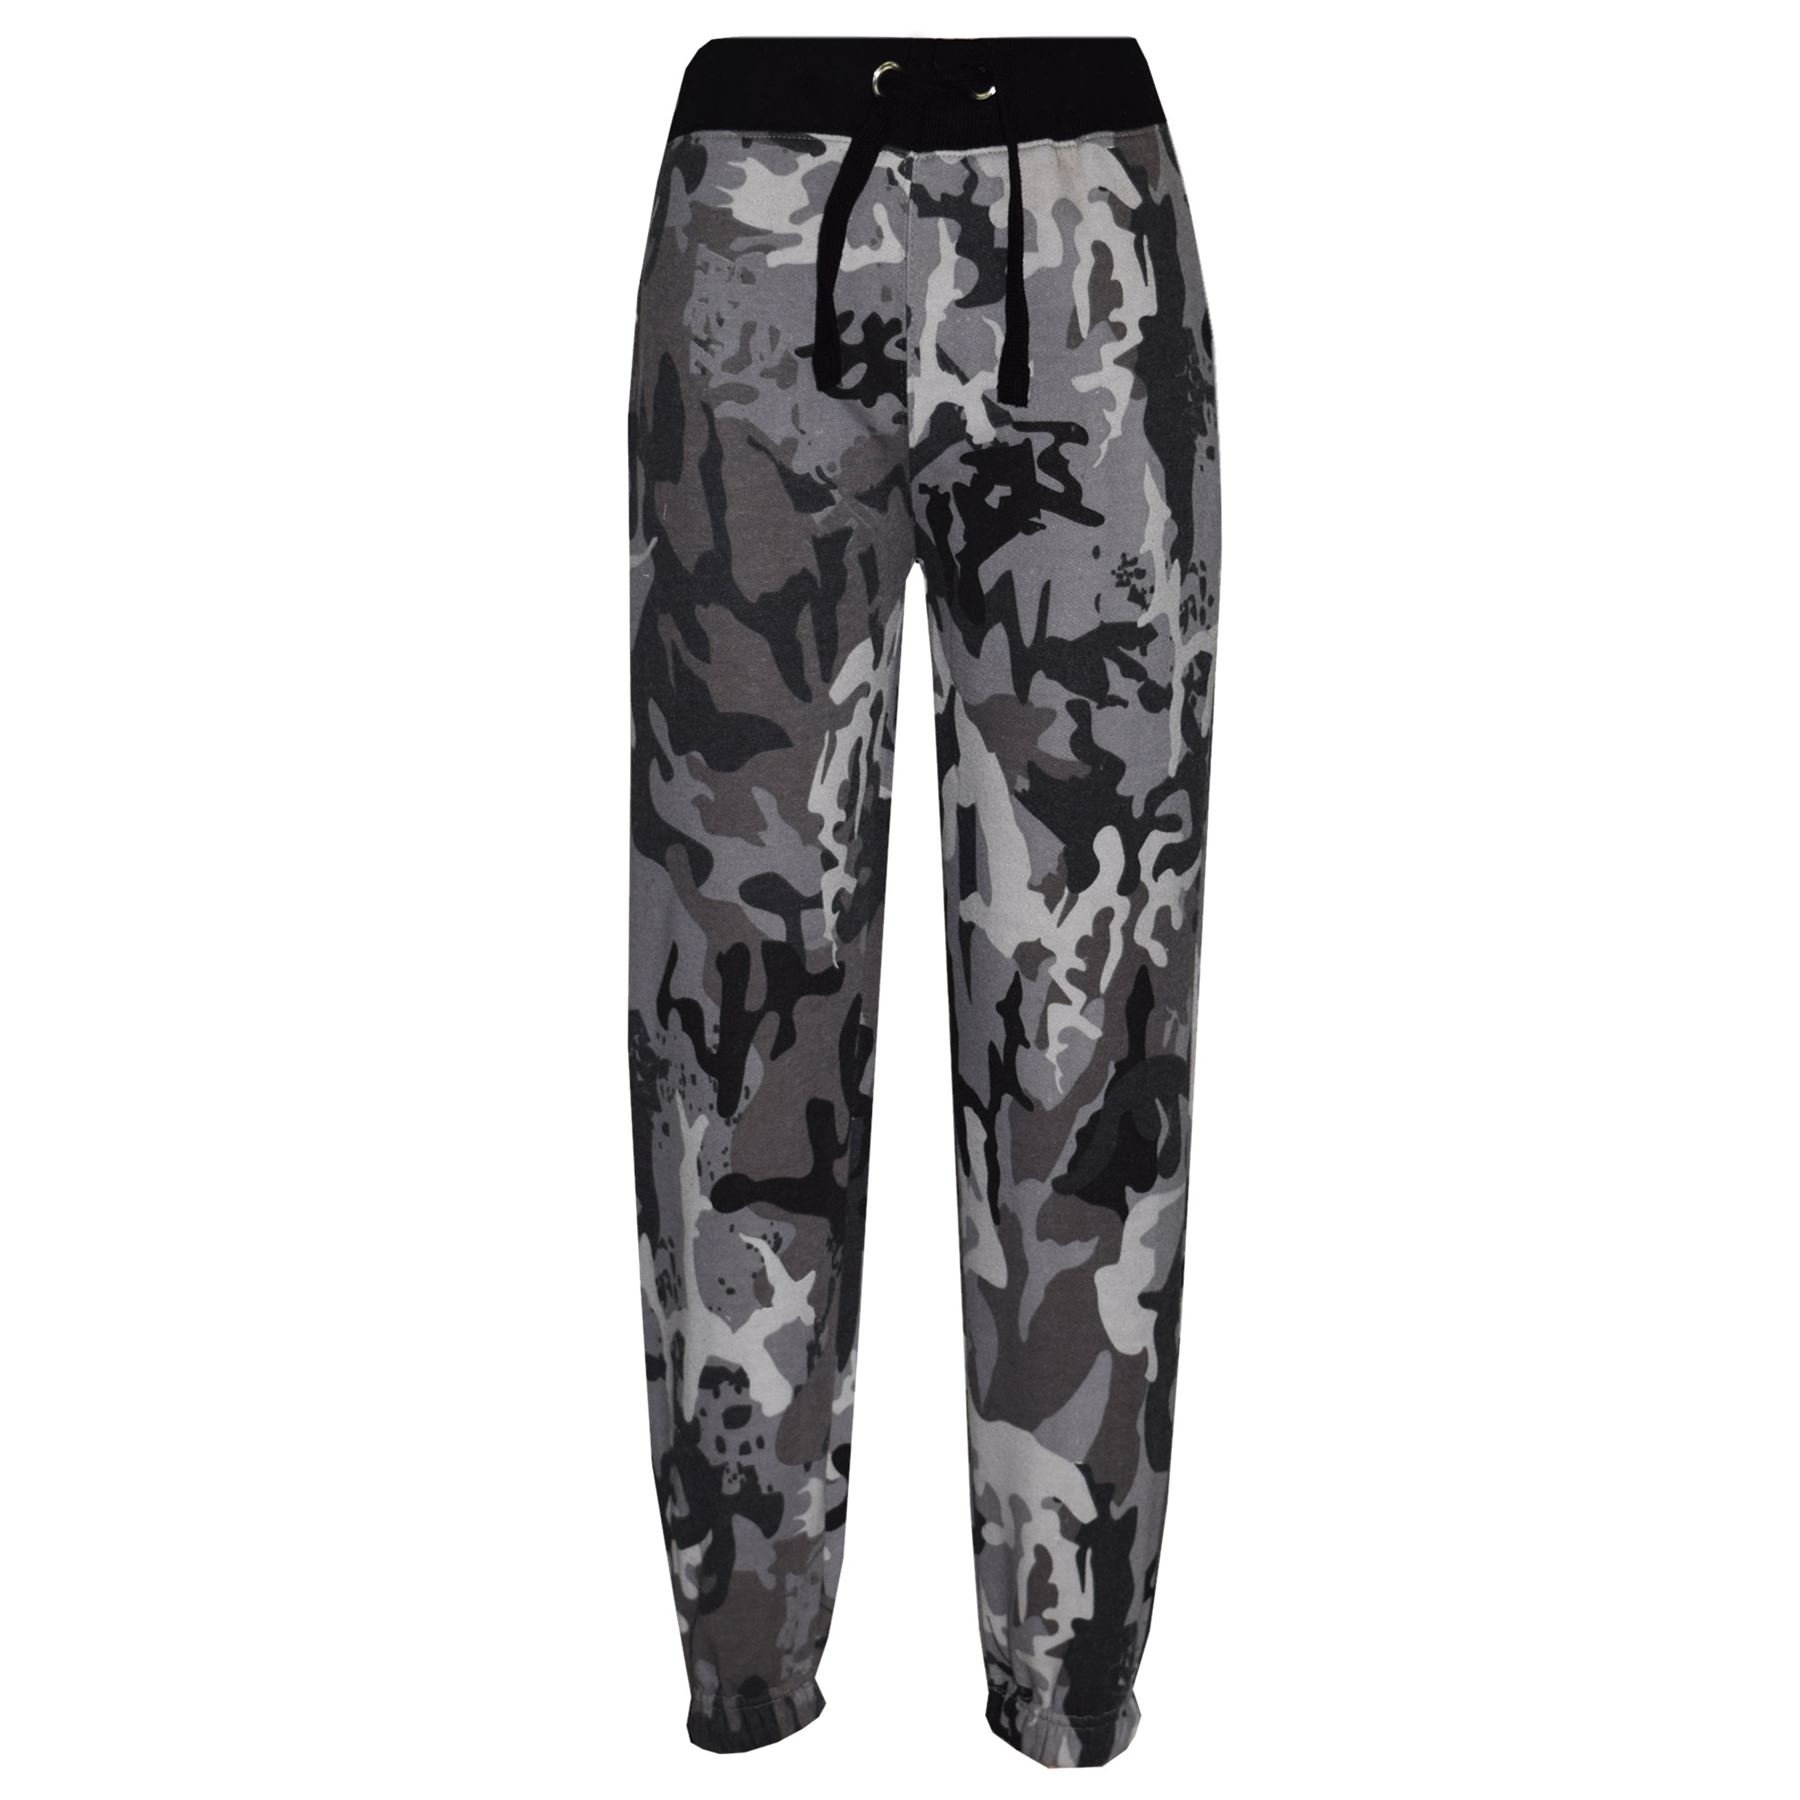 A2Z 4 Kids® Kids Boys Girls Camouflage Joggers Jogging Pants Trackie Bottom Casual Trousers by A2Z 4 Kids® (Image #1)